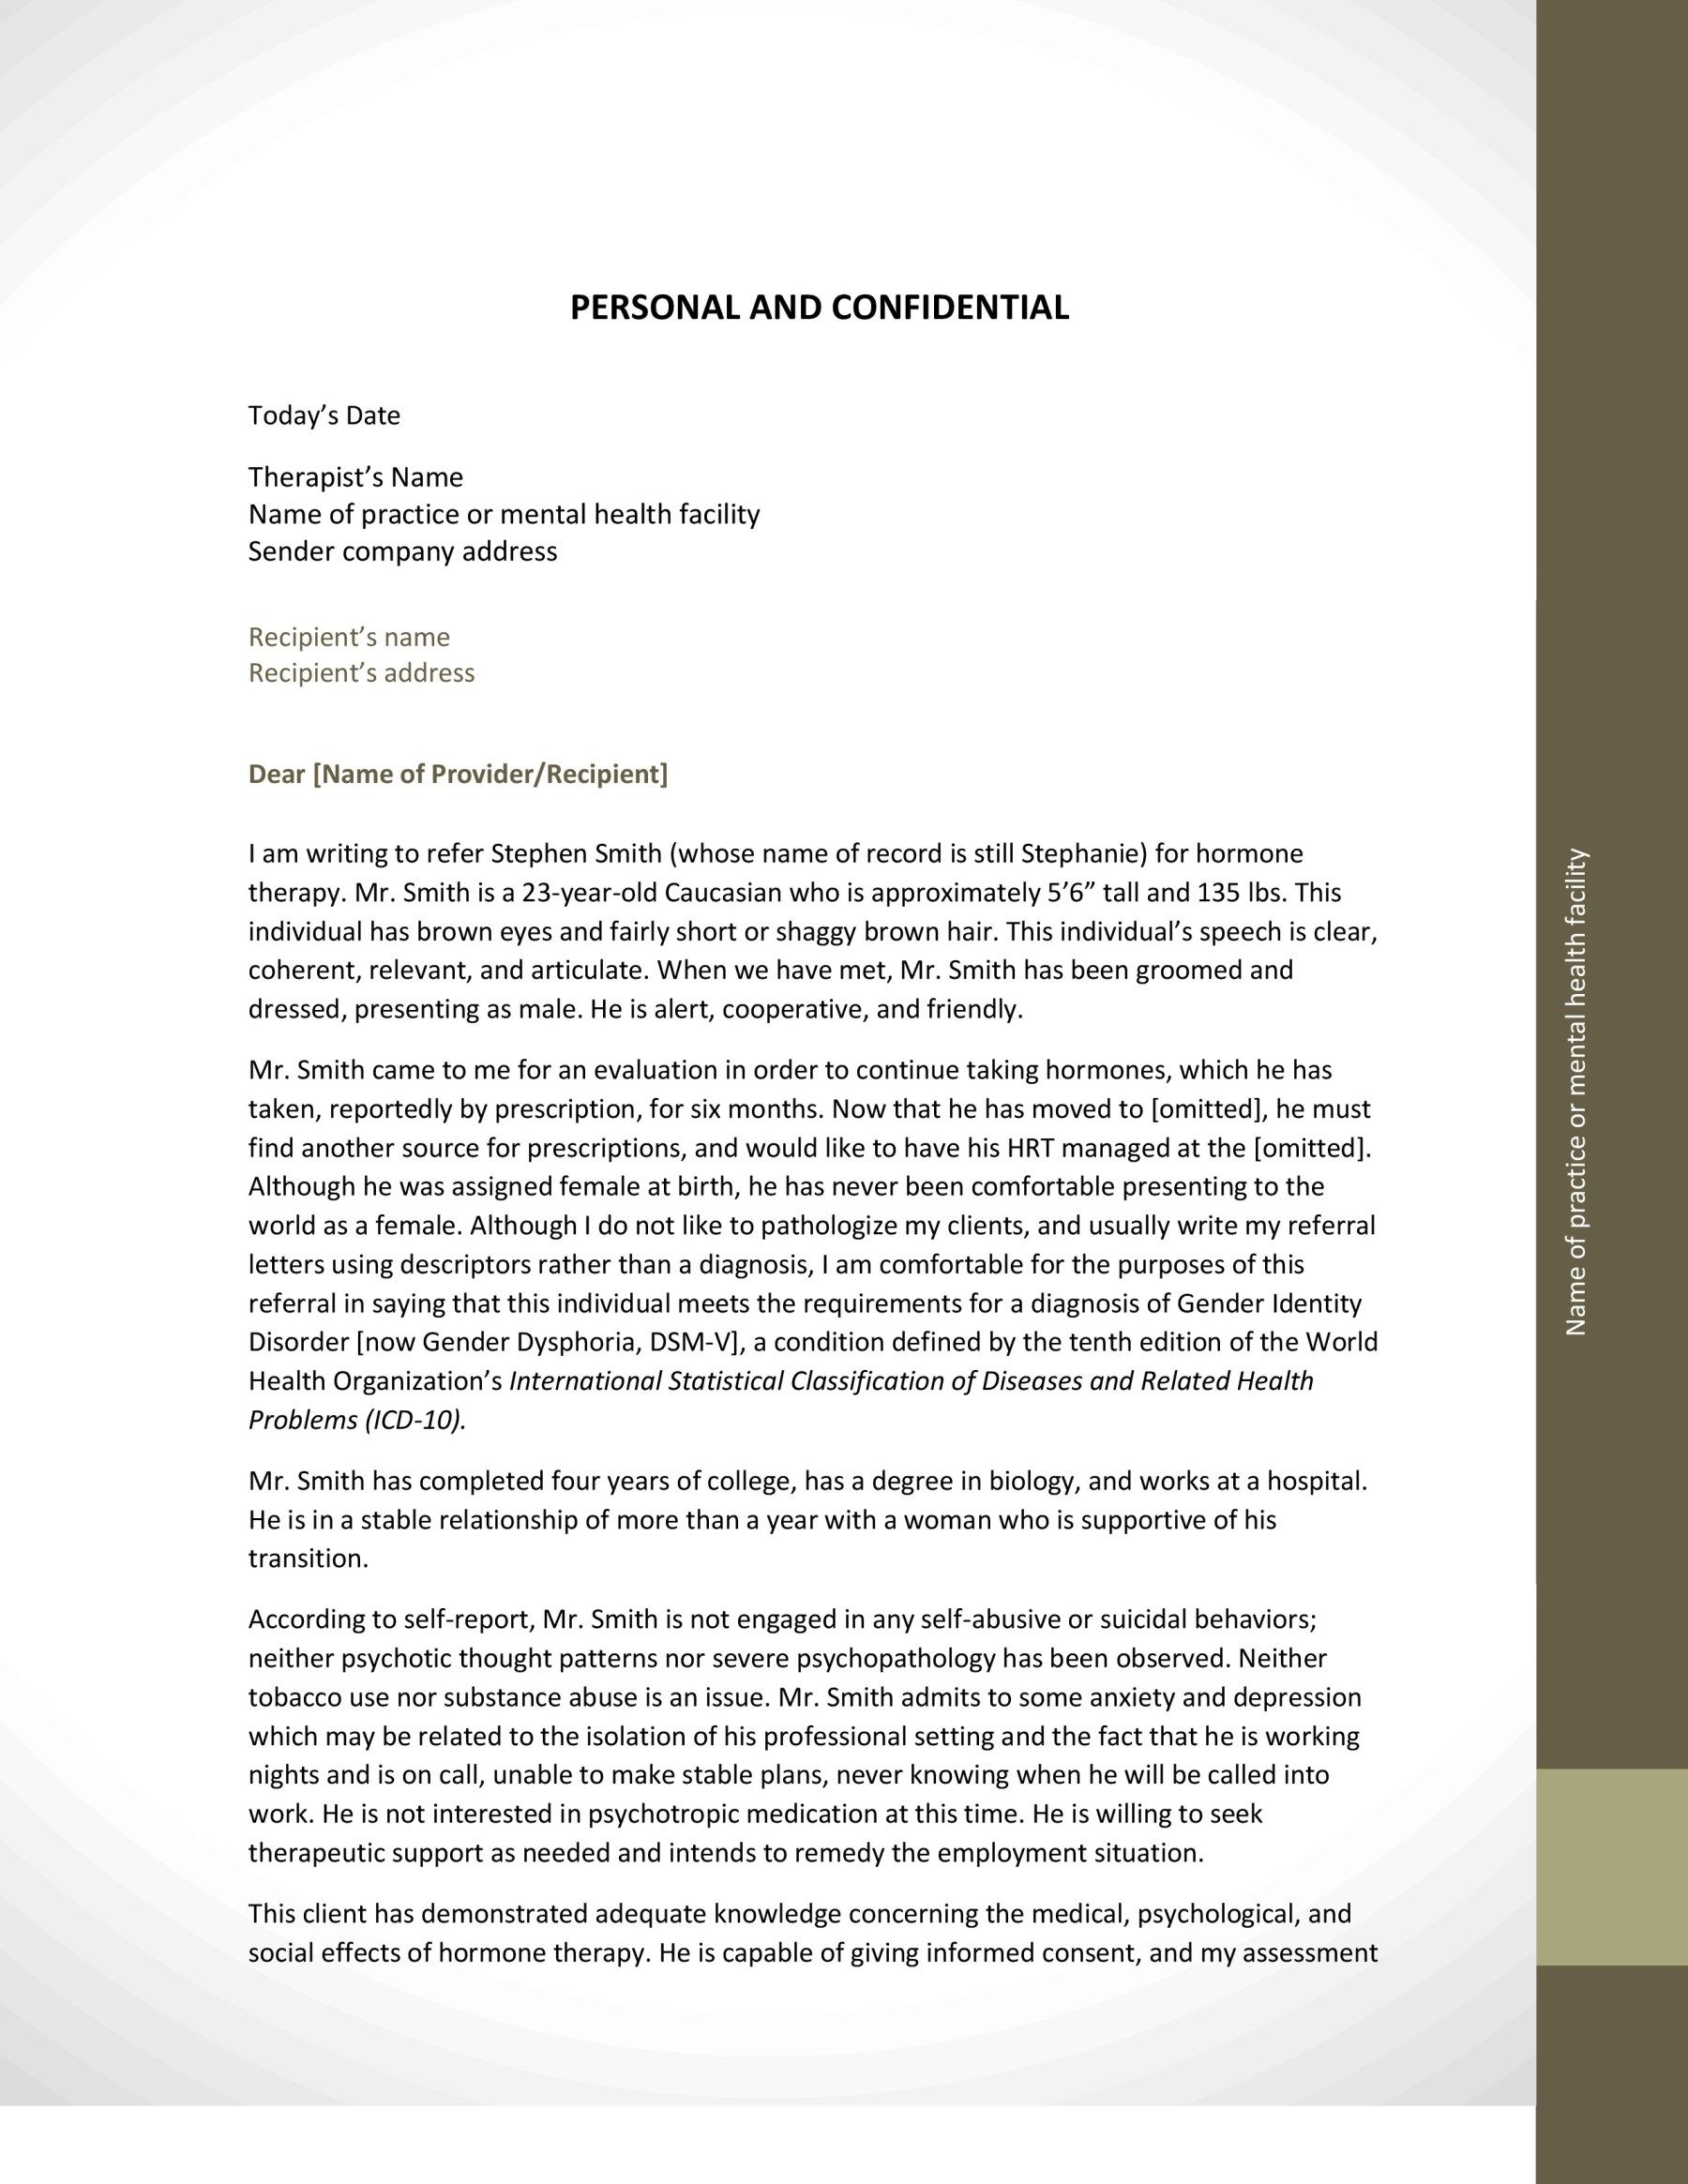 Company Referral Letter Enchanting Hrt Referral Letter Examplepage0  Mine  Pinterest  Referral .